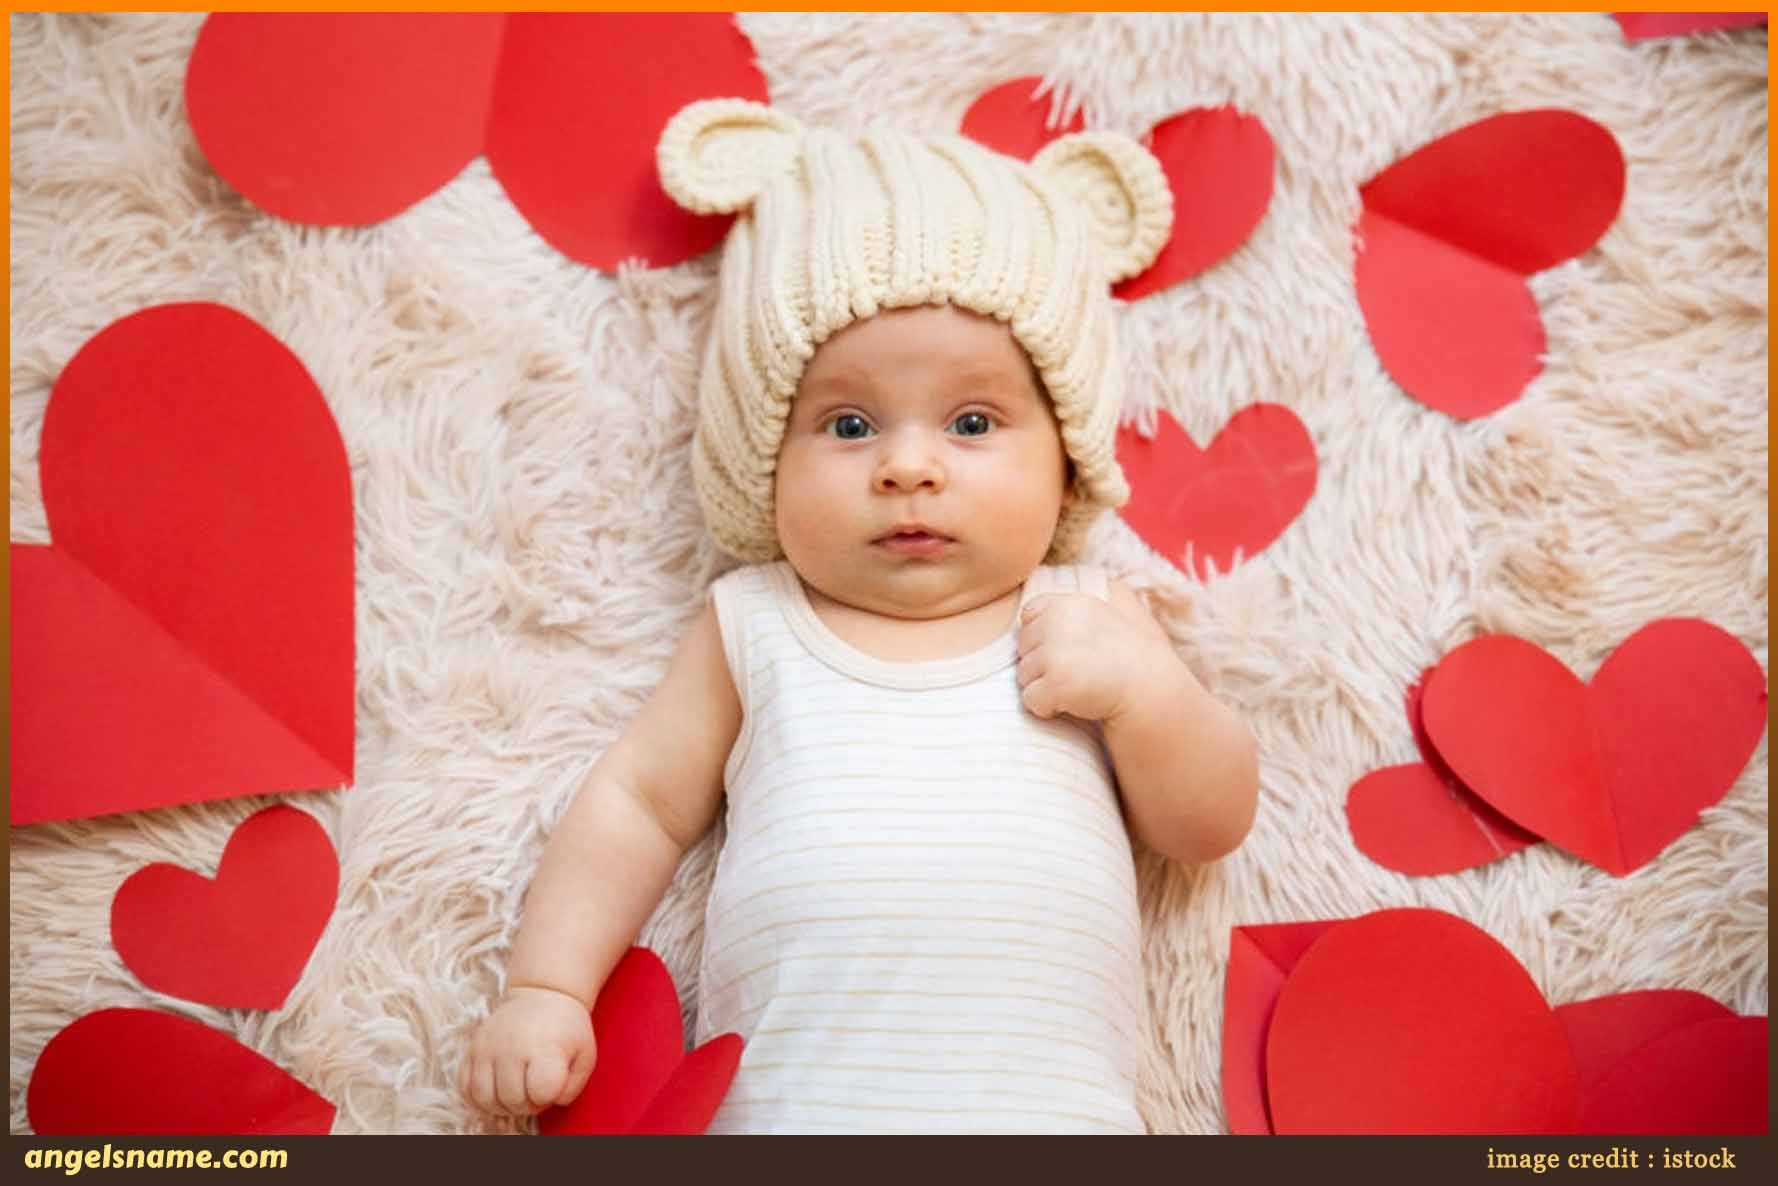 500 Sweet Baby Names That Mean Love